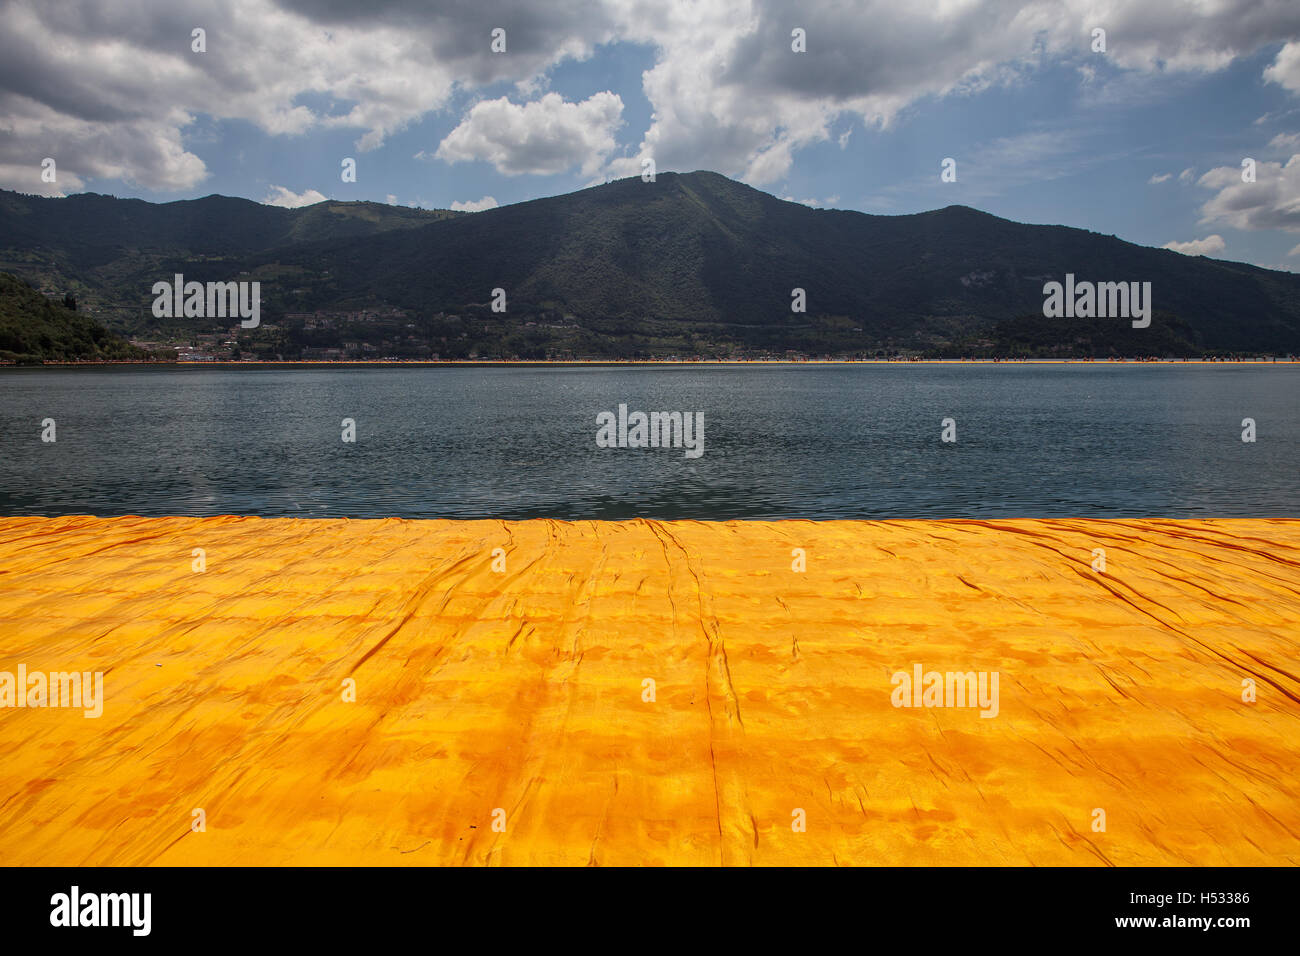 Christo and Jeanne Claude's 'Floating Piers', Lake Iseo, Italy 2016 - Stock Image